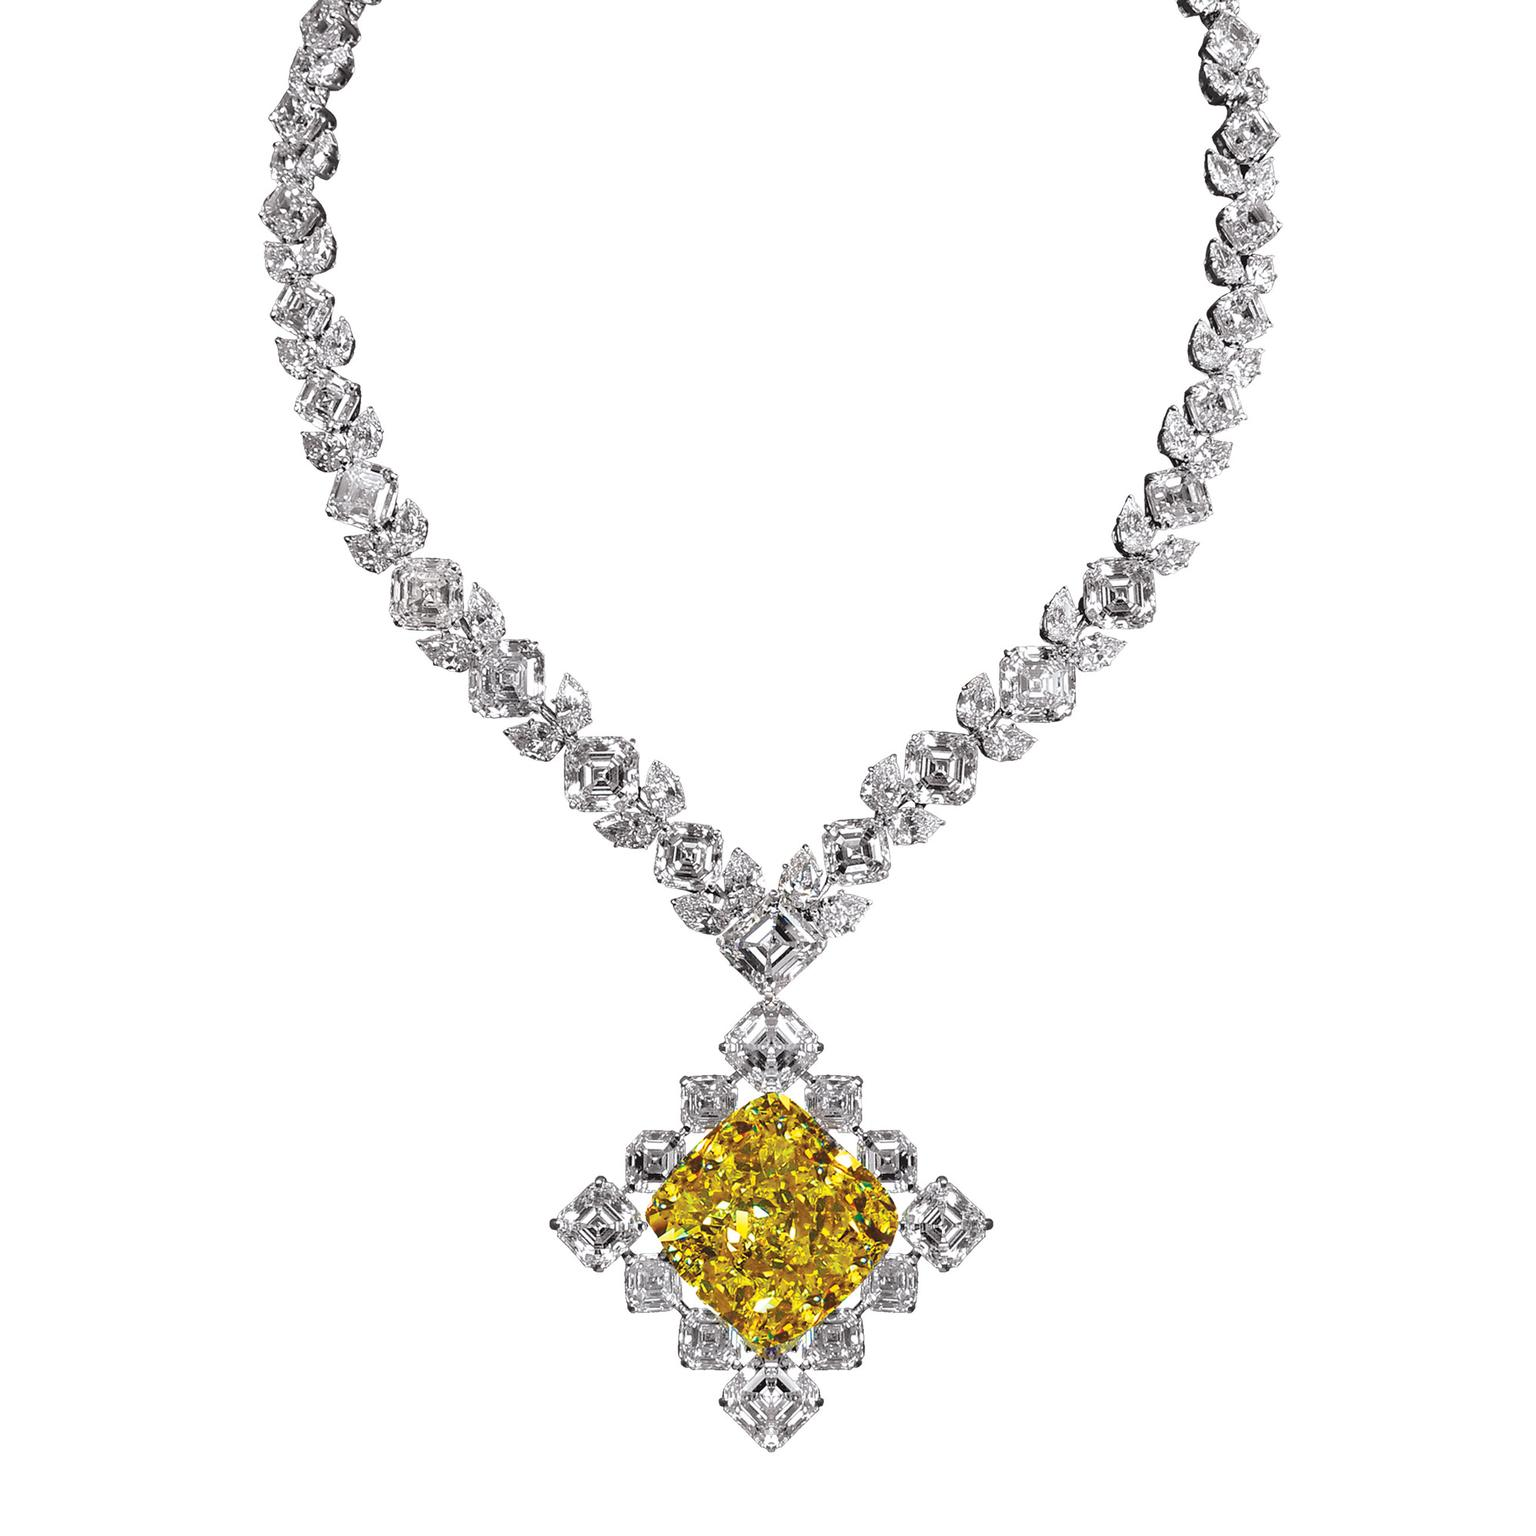 Jacob & Co 100ct Fancy Intense yellow diamond necklace